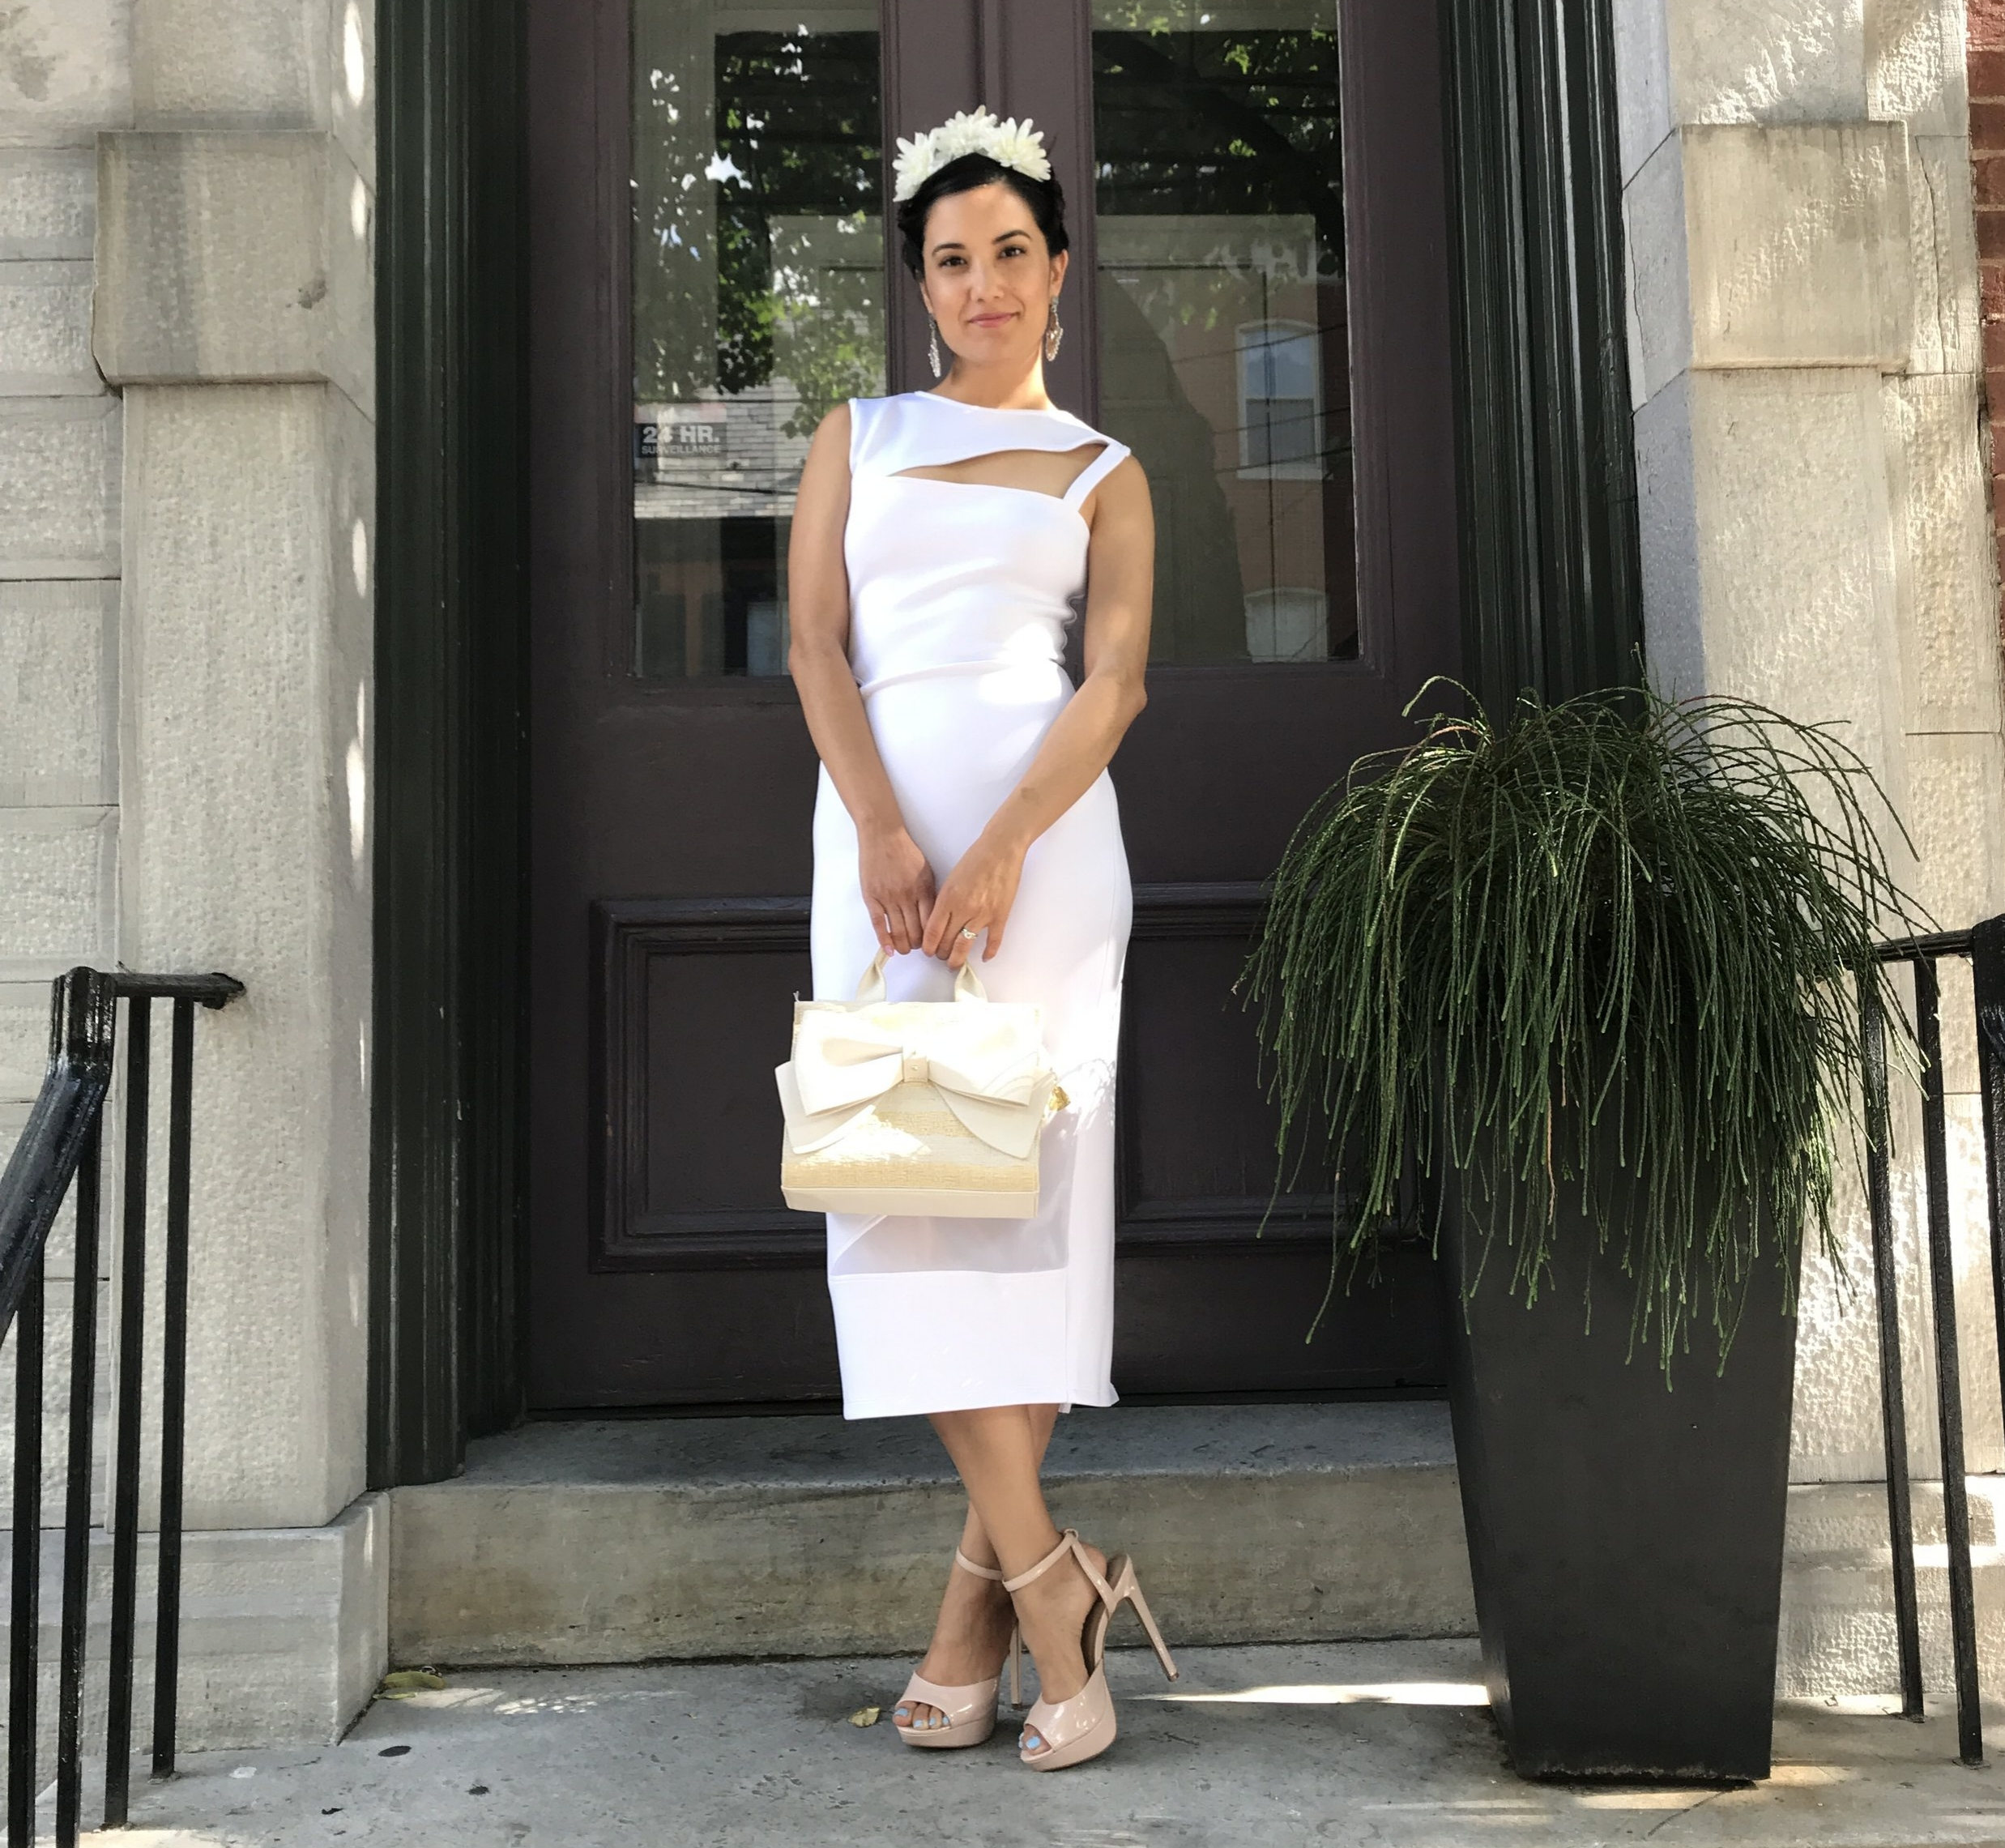 Ethical and low-waste dress borrowed from  19th Amendment  mixed with a second-hand purse and heels to show my commitment to ethical fashion and fair labor practices. I had to add the flowers on top in honor of the original radical fashionista Frida Khalo.